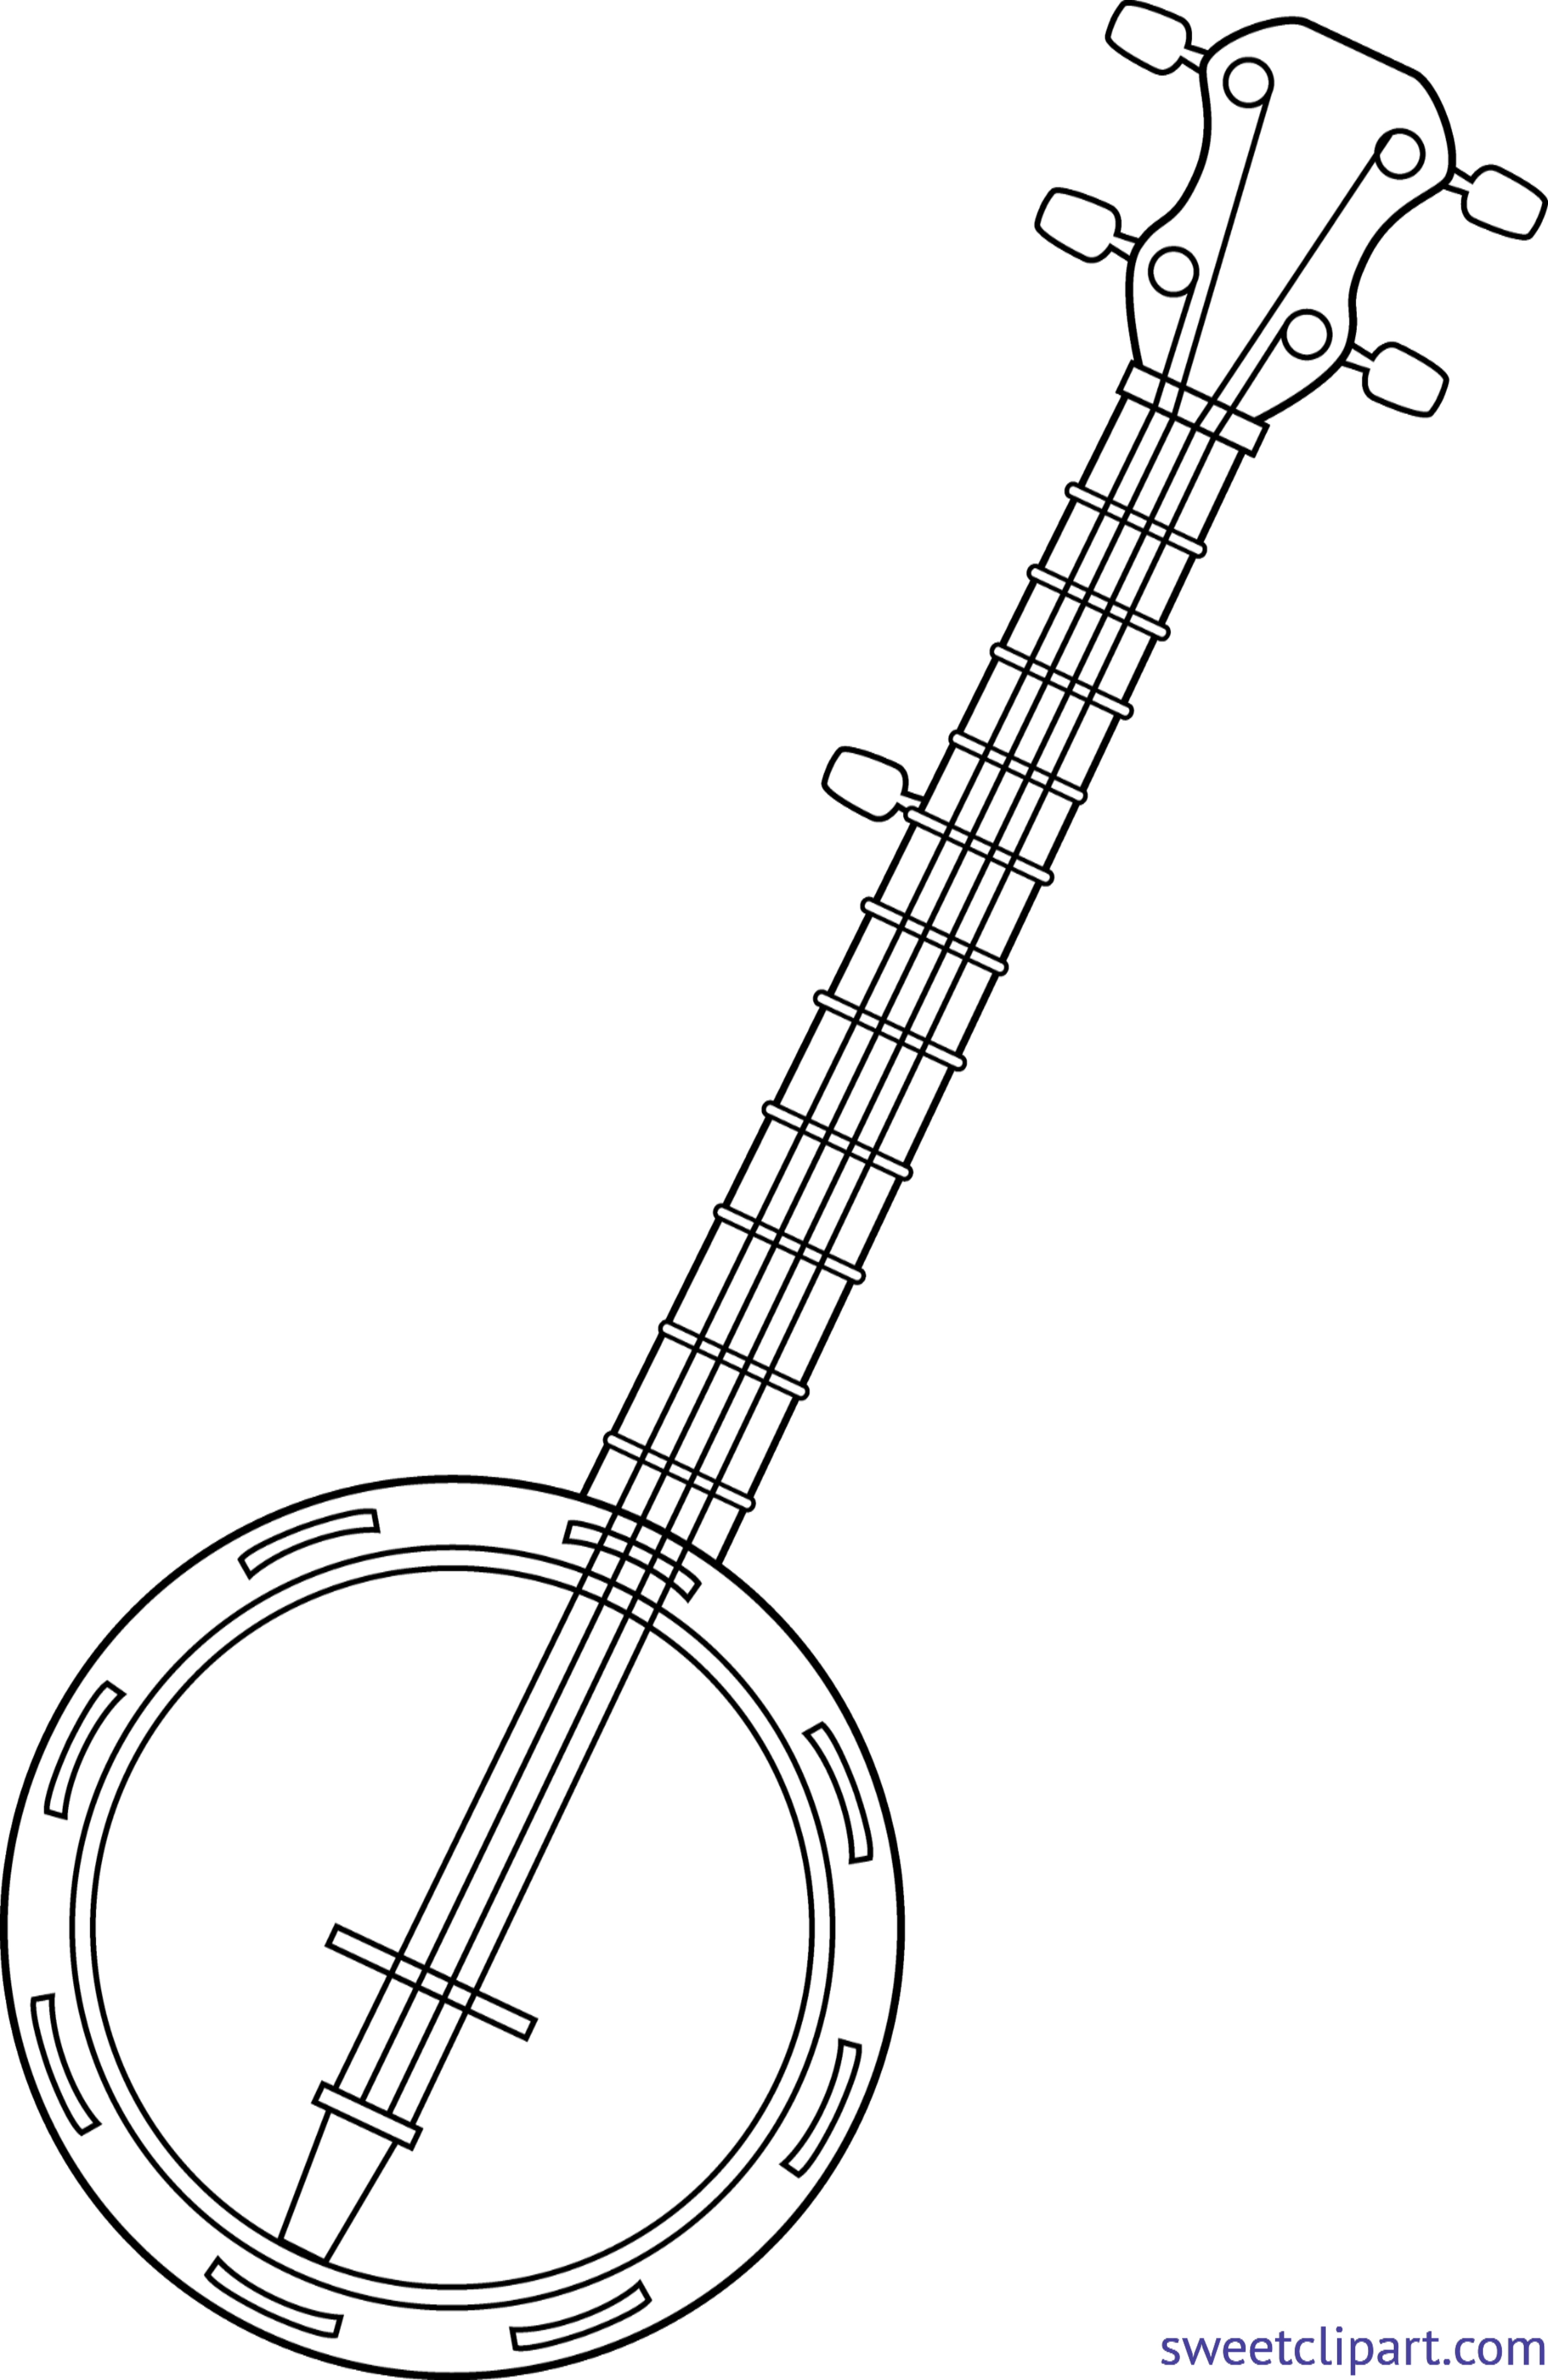 image library library Lineart clip art sweet. Banjo clipart black and white.